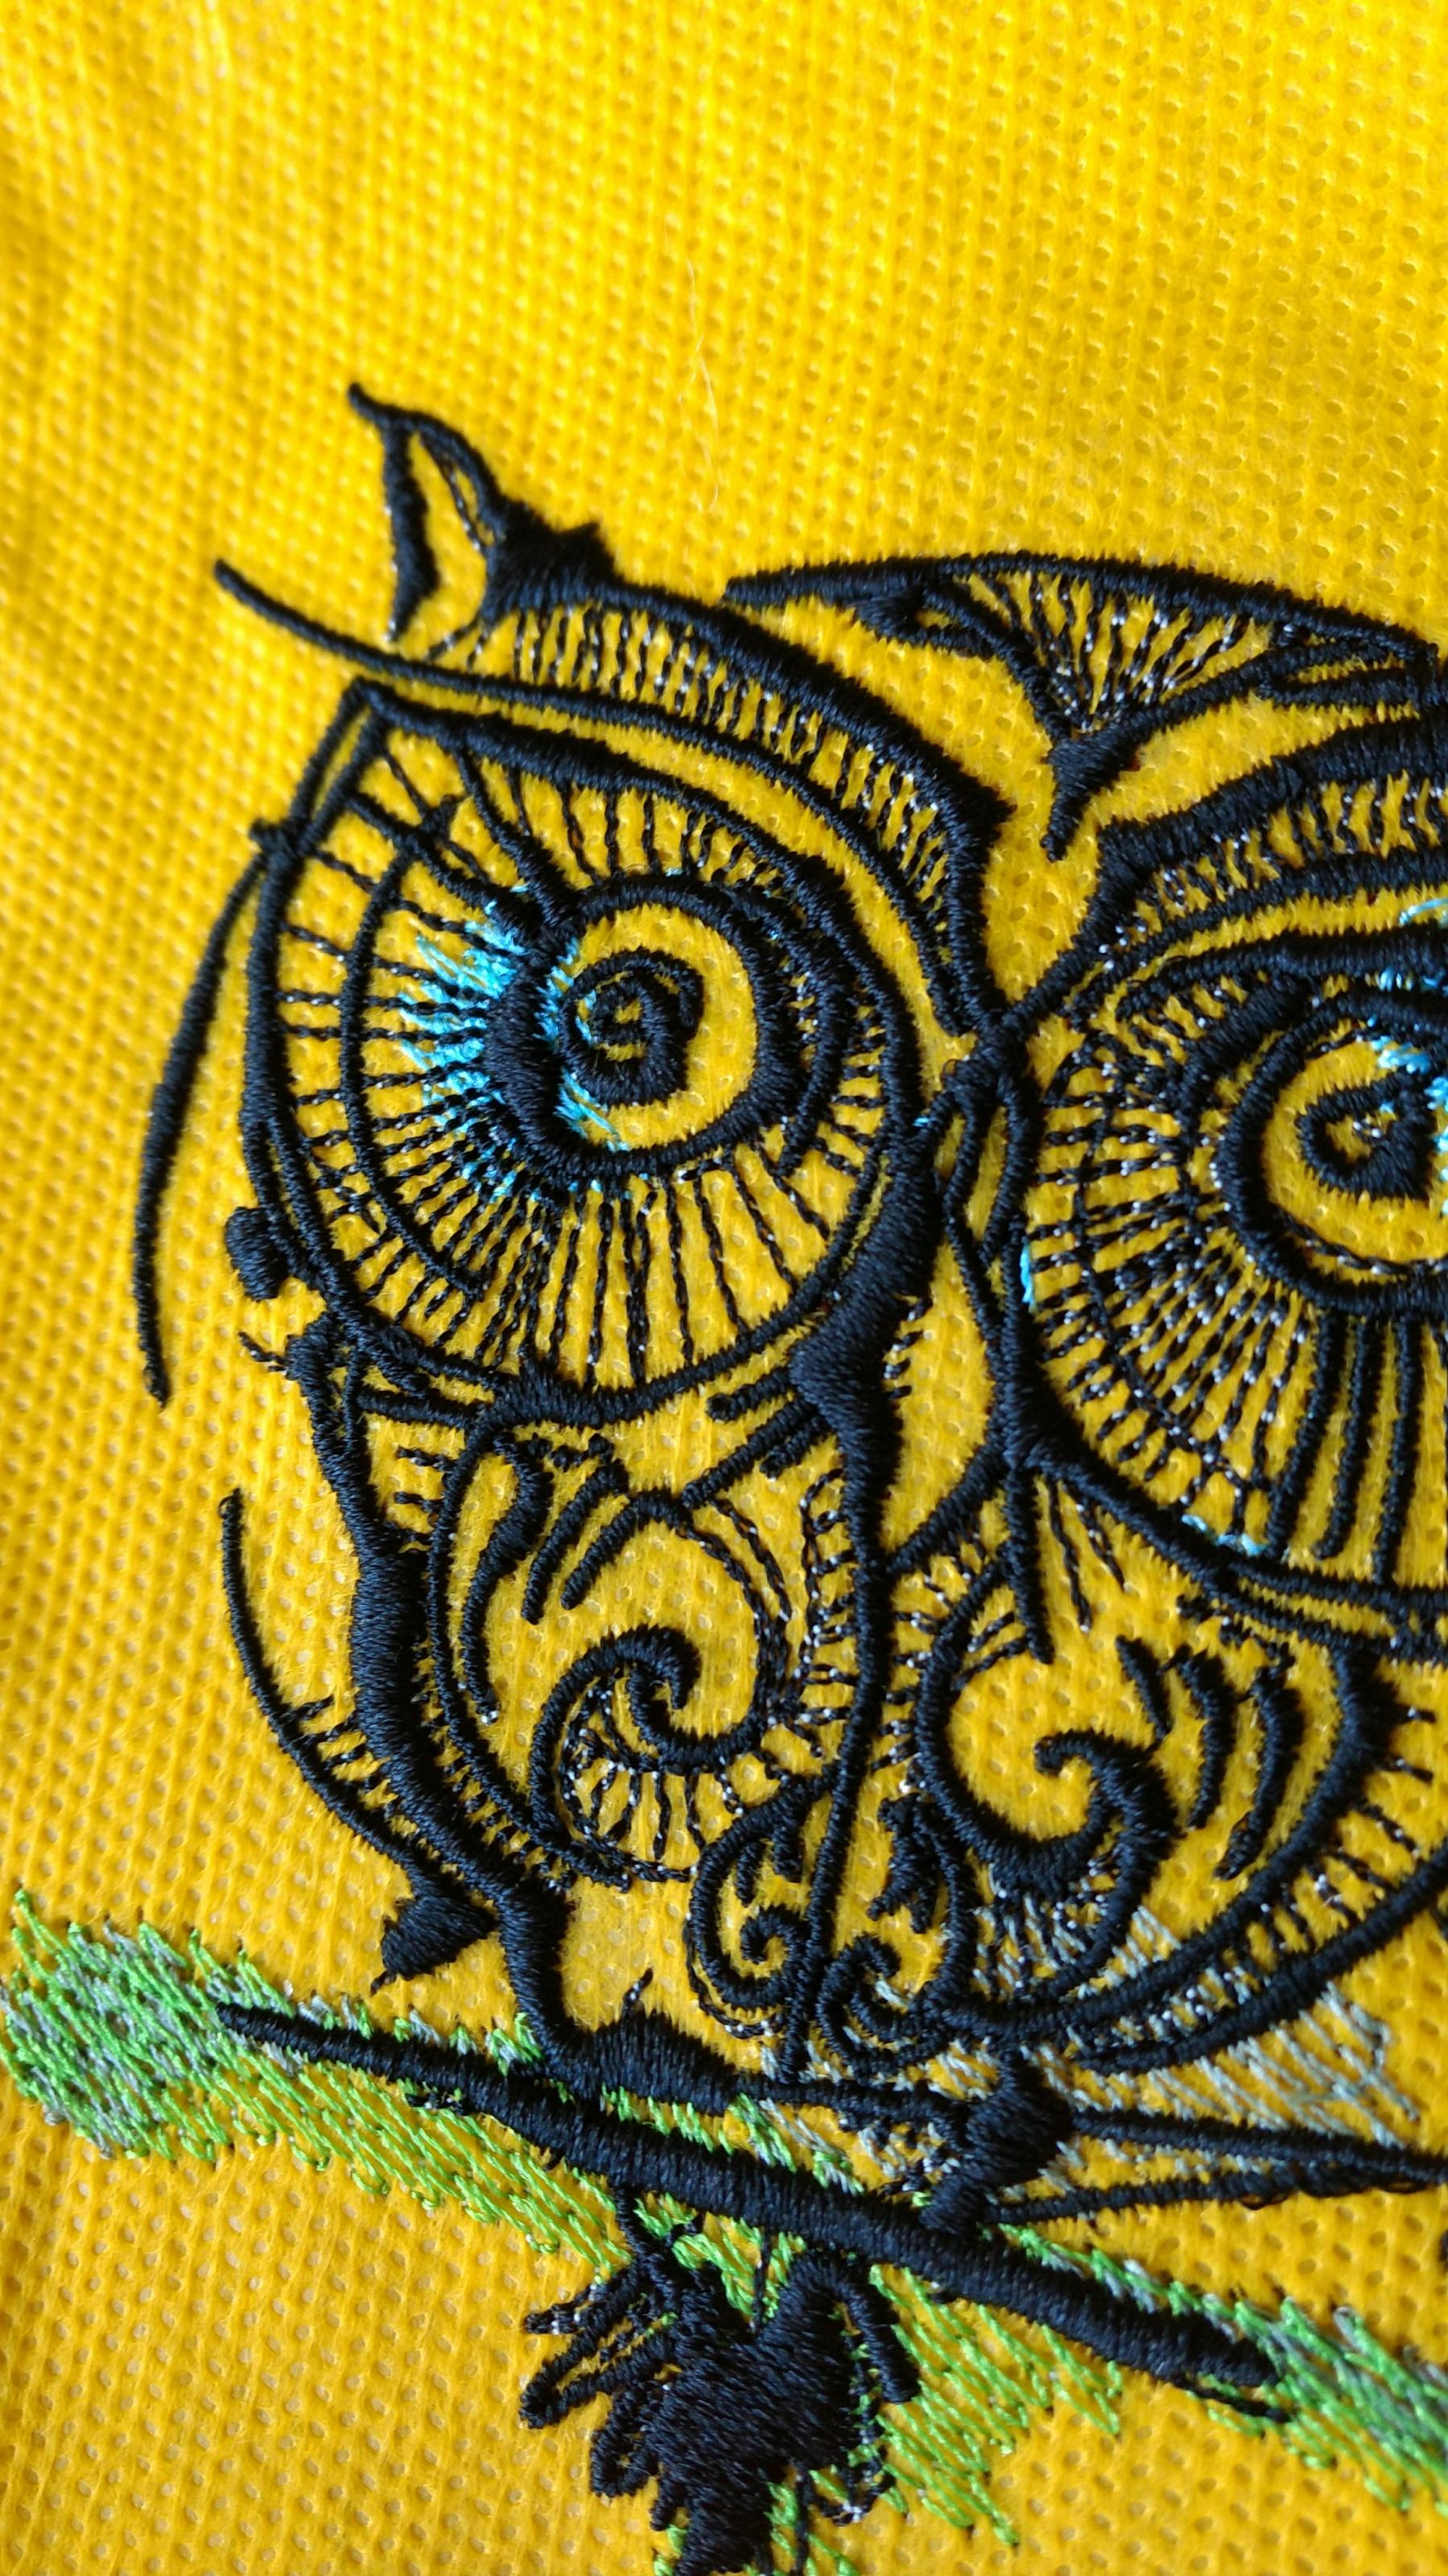 Fragment Of Big Eyes Owl Embroidery Design Showcase With Fauna